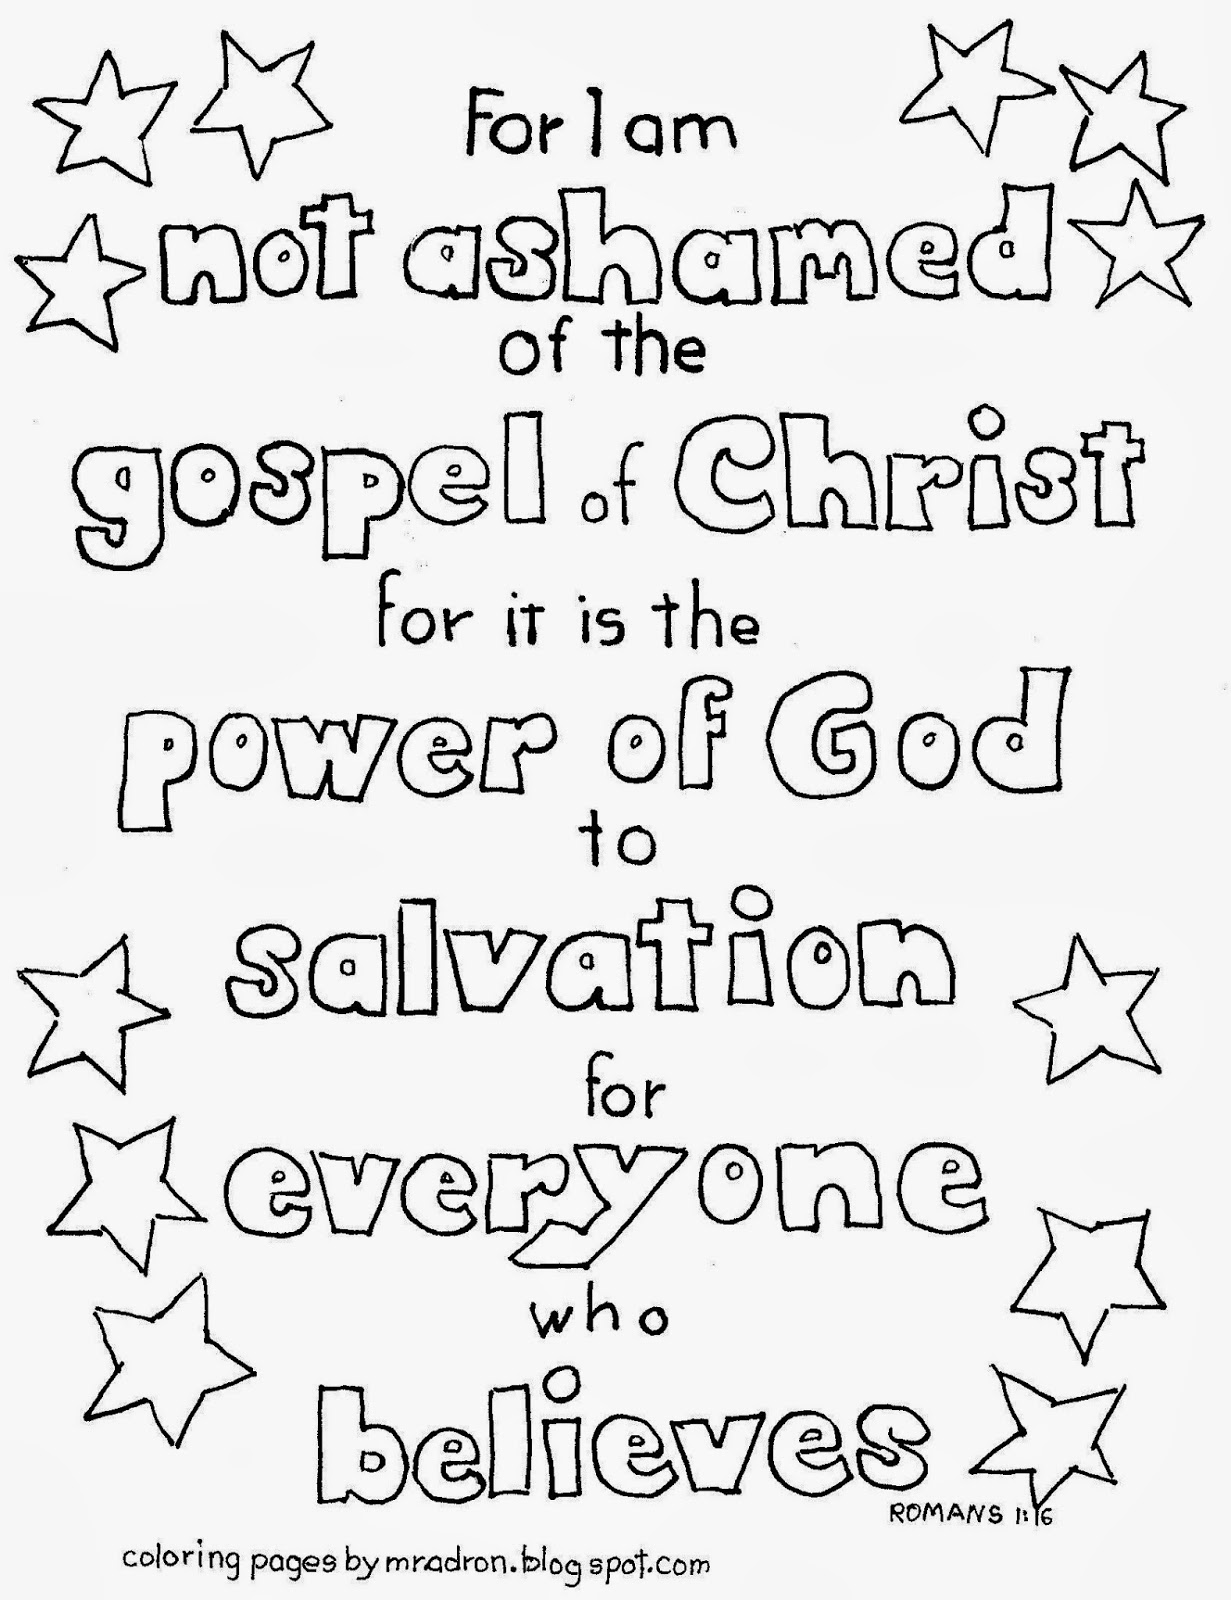 Coloring pages for preschoolers on salavation - Romans 1 16 I Am Not Ashamed Of The Gospel Coloring Page